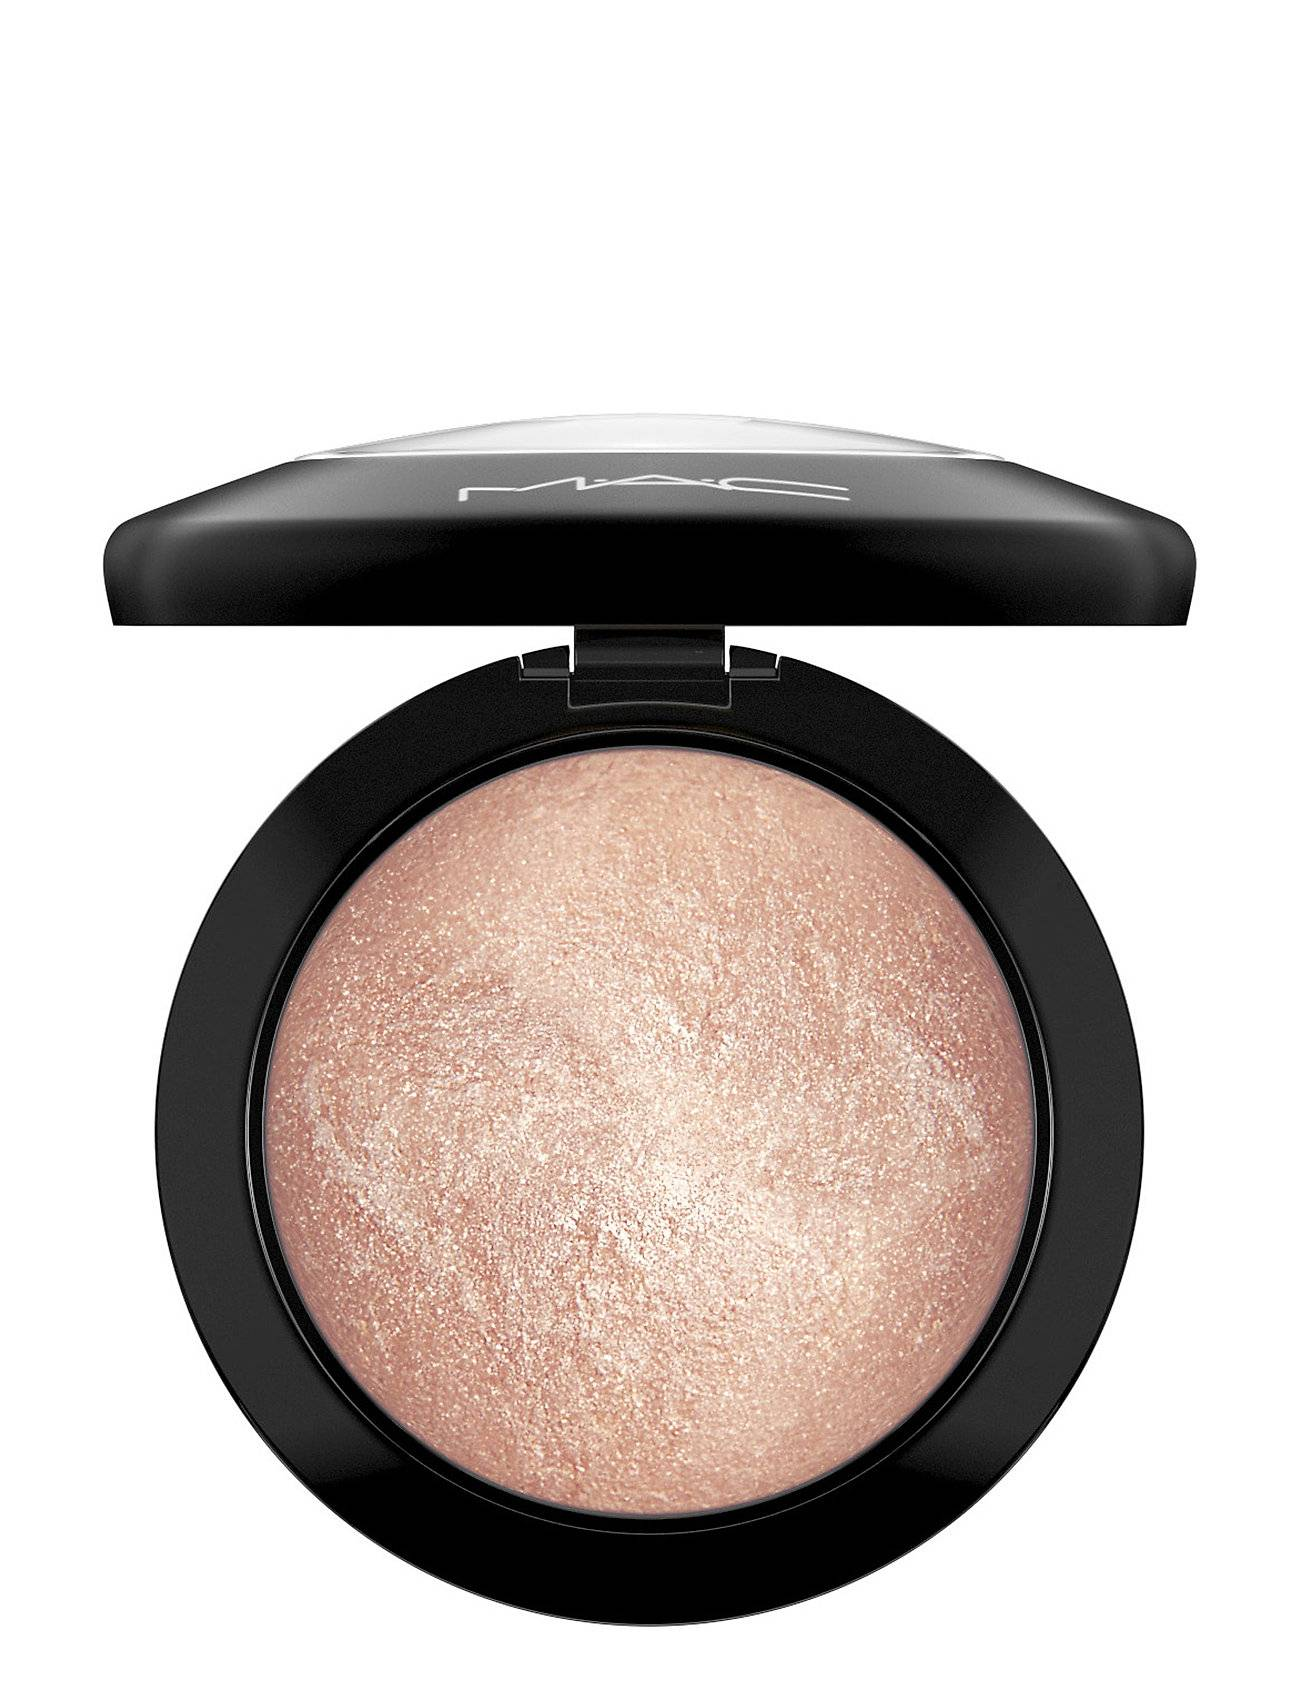 M.A.C. Mineralize Skinfinish Soft And Gentle